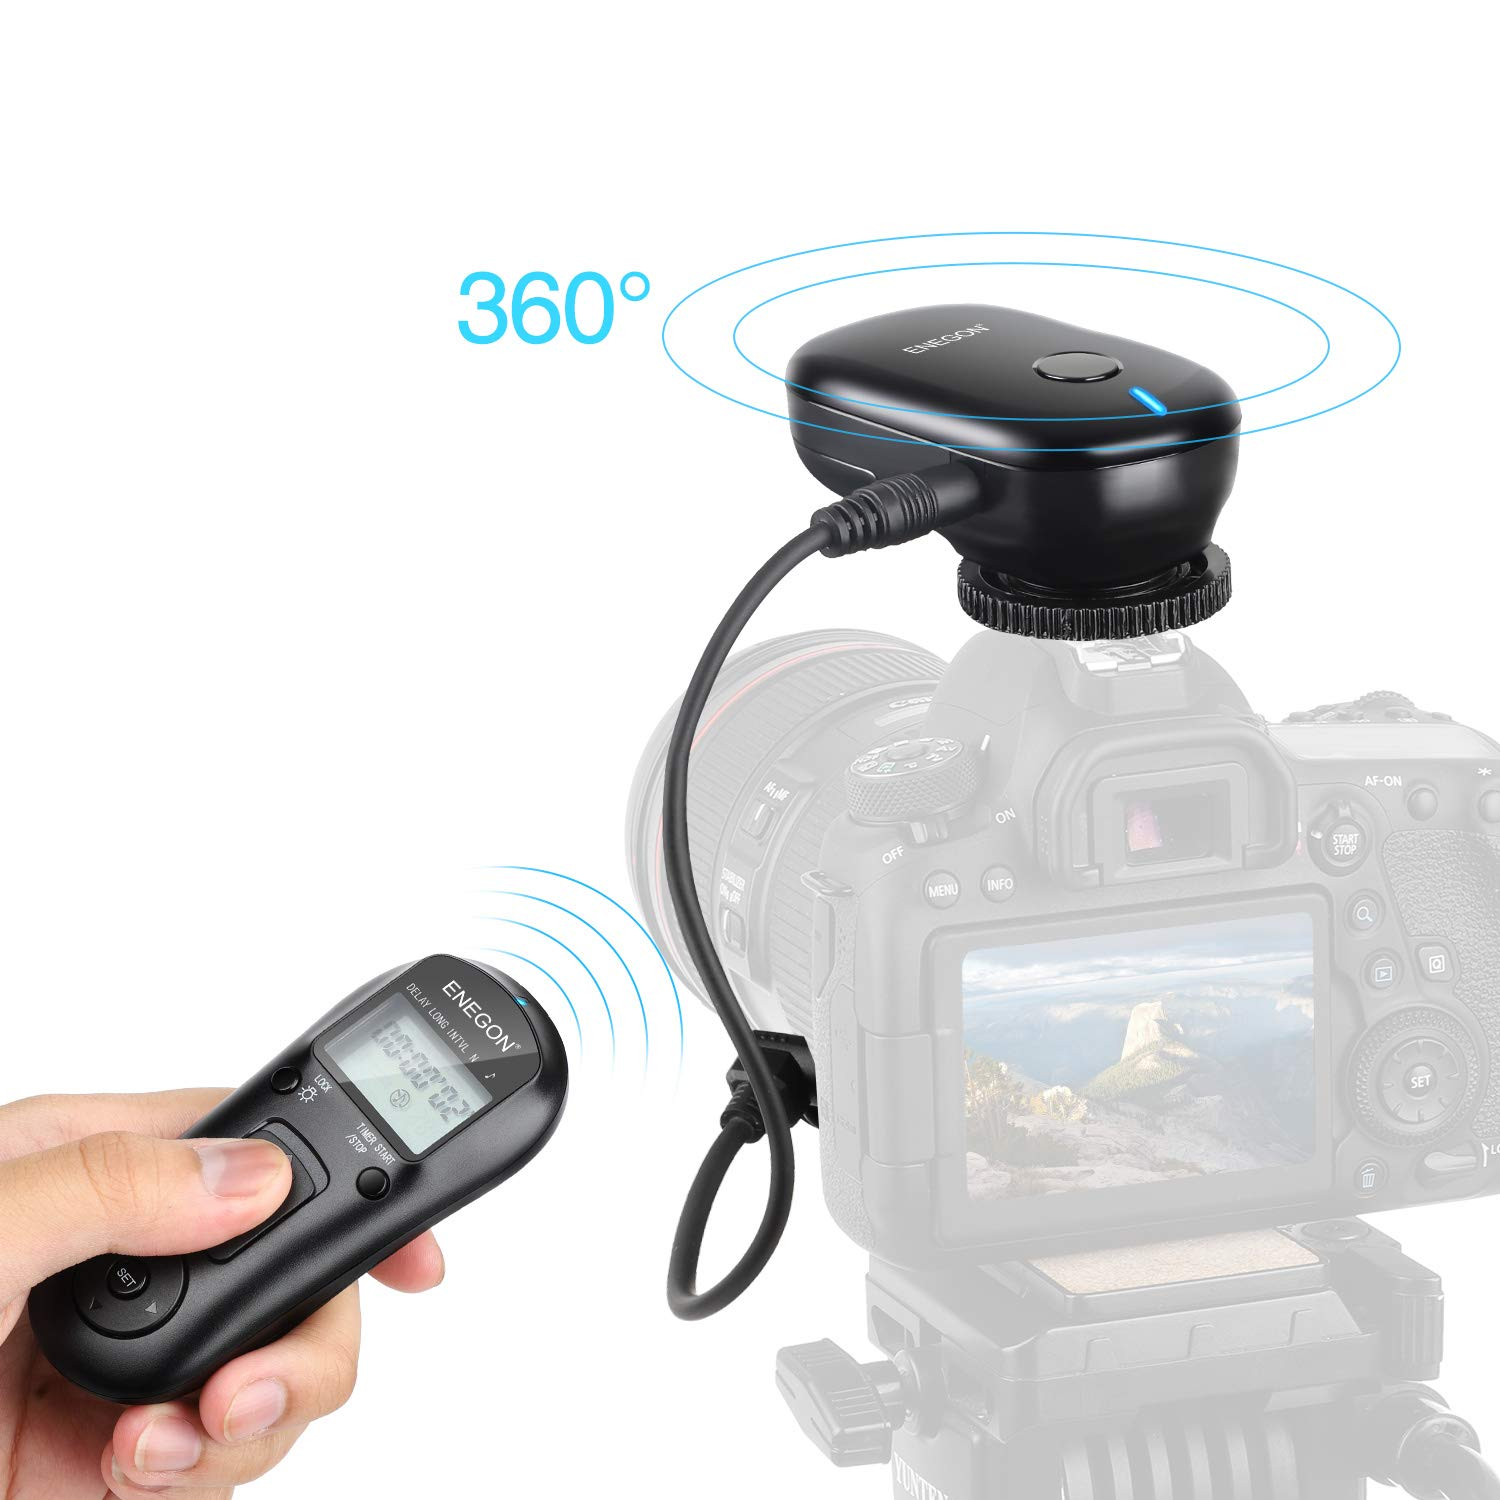 ENEGON Wireless Remote Shutter Release Control Timer with Cord for Canon EOS Rebel T6 T7 80D 70D 60D 60Da 77D T7i T6i T6s SL2 SL1 T5 T3 T5i T4i T3i T2i EOS RP R M6 M5 and More Canon Cameras by ENEGON